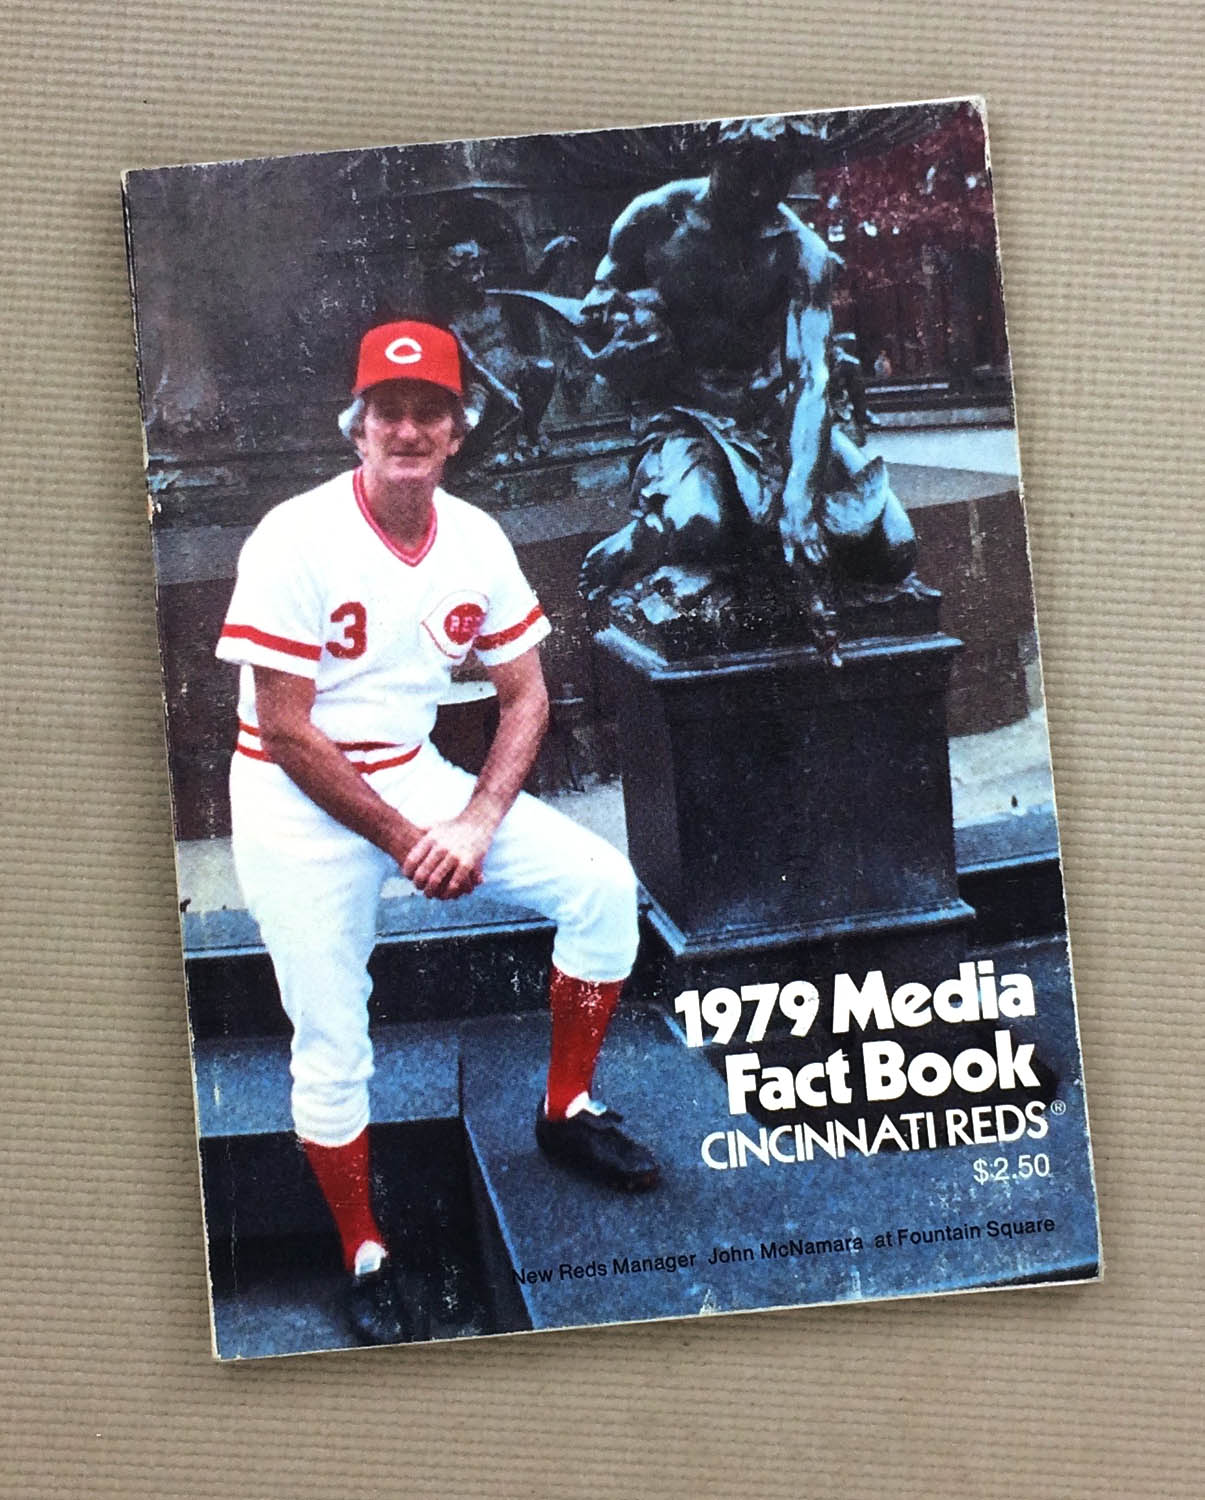 Cincinnati Reds 1979 Fact Book